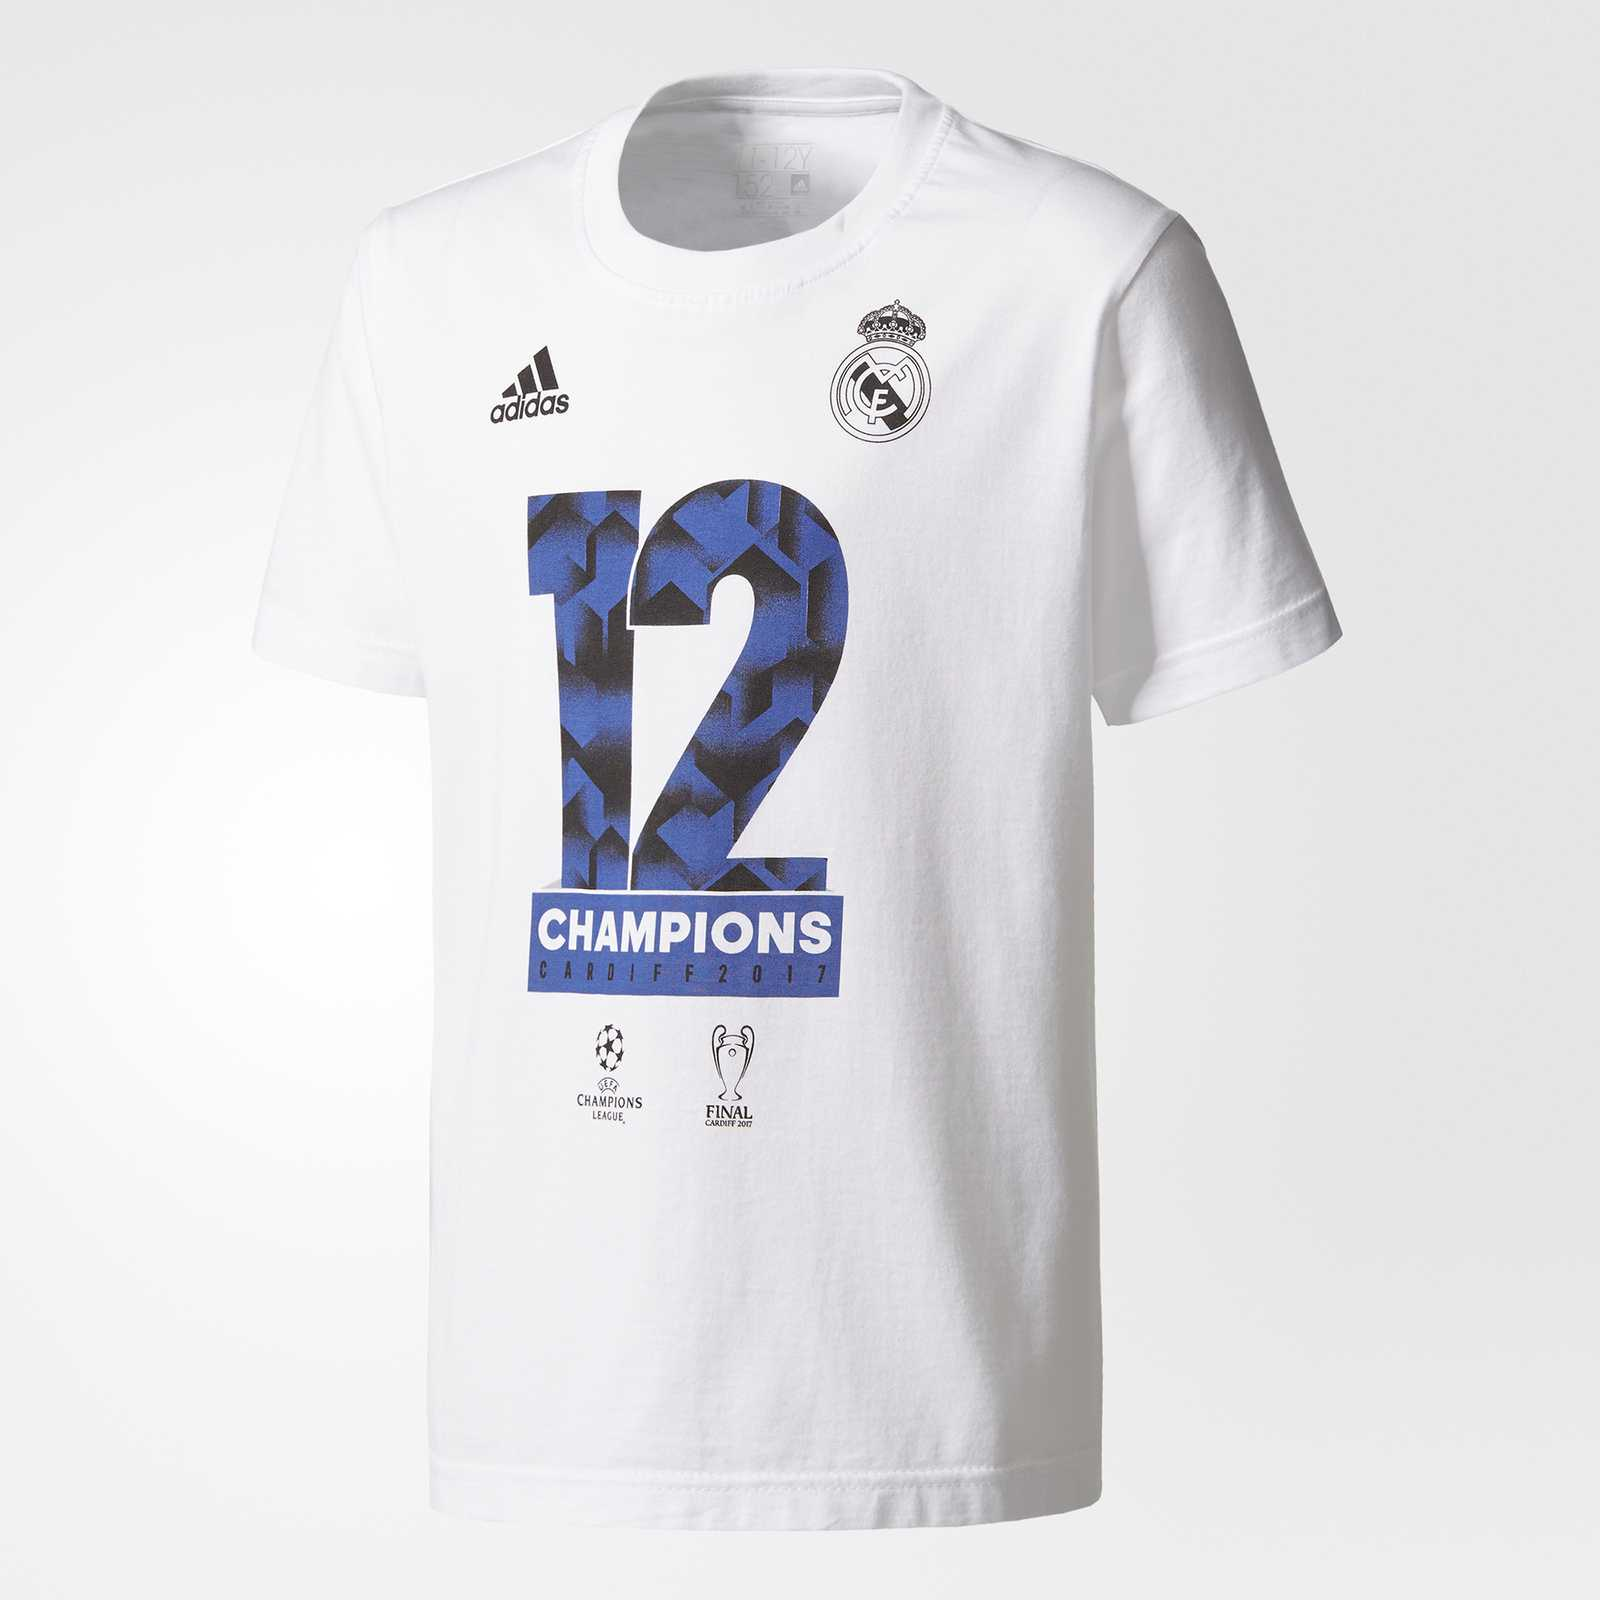 real-madrid-champions-league-winners-2017-collection-2.jpg